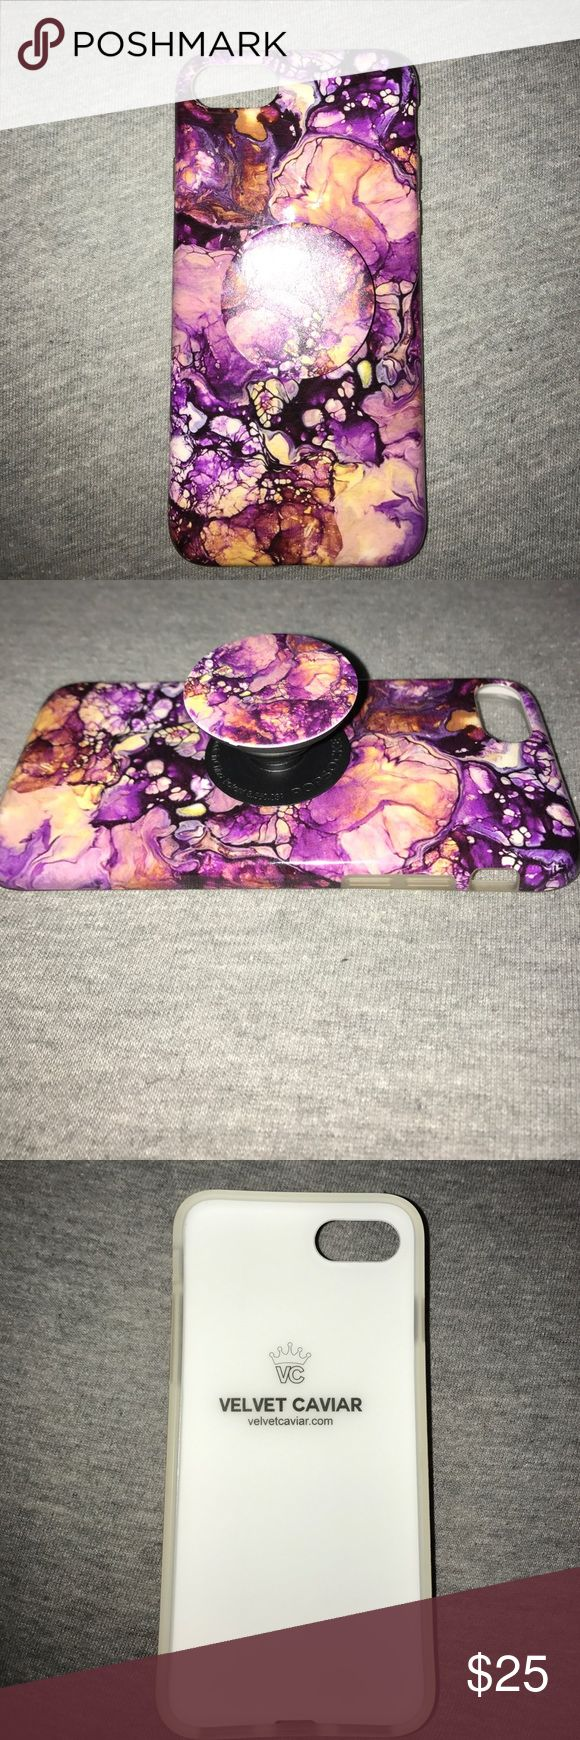 Purple Marble iPhone 7 case w/ matching popsocket Velvet Caviar case for iPhone 7, great condition. Popsocket can be removed. Accessories Phone Cases